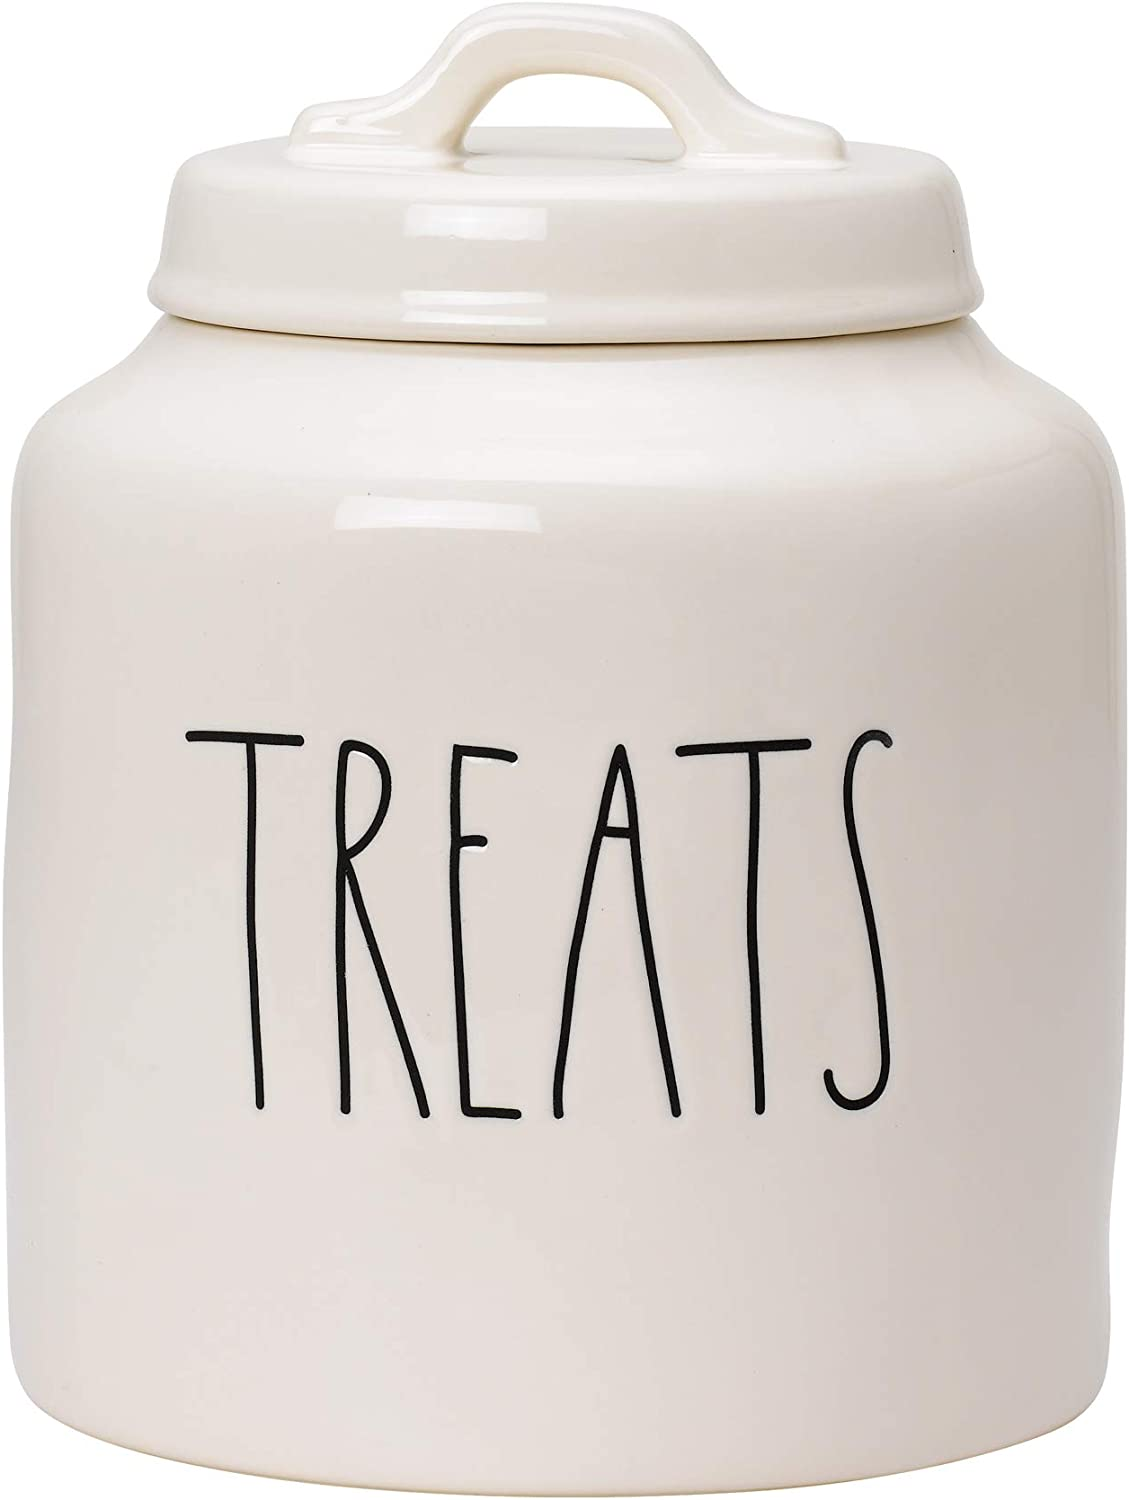 RAE DUNN Cookie Jar, Ceramic Treats Food Container for Cookies or Dog Biscuits, Kitchen Pottery Accents, Snack Canister with Sealed Lid (5.5